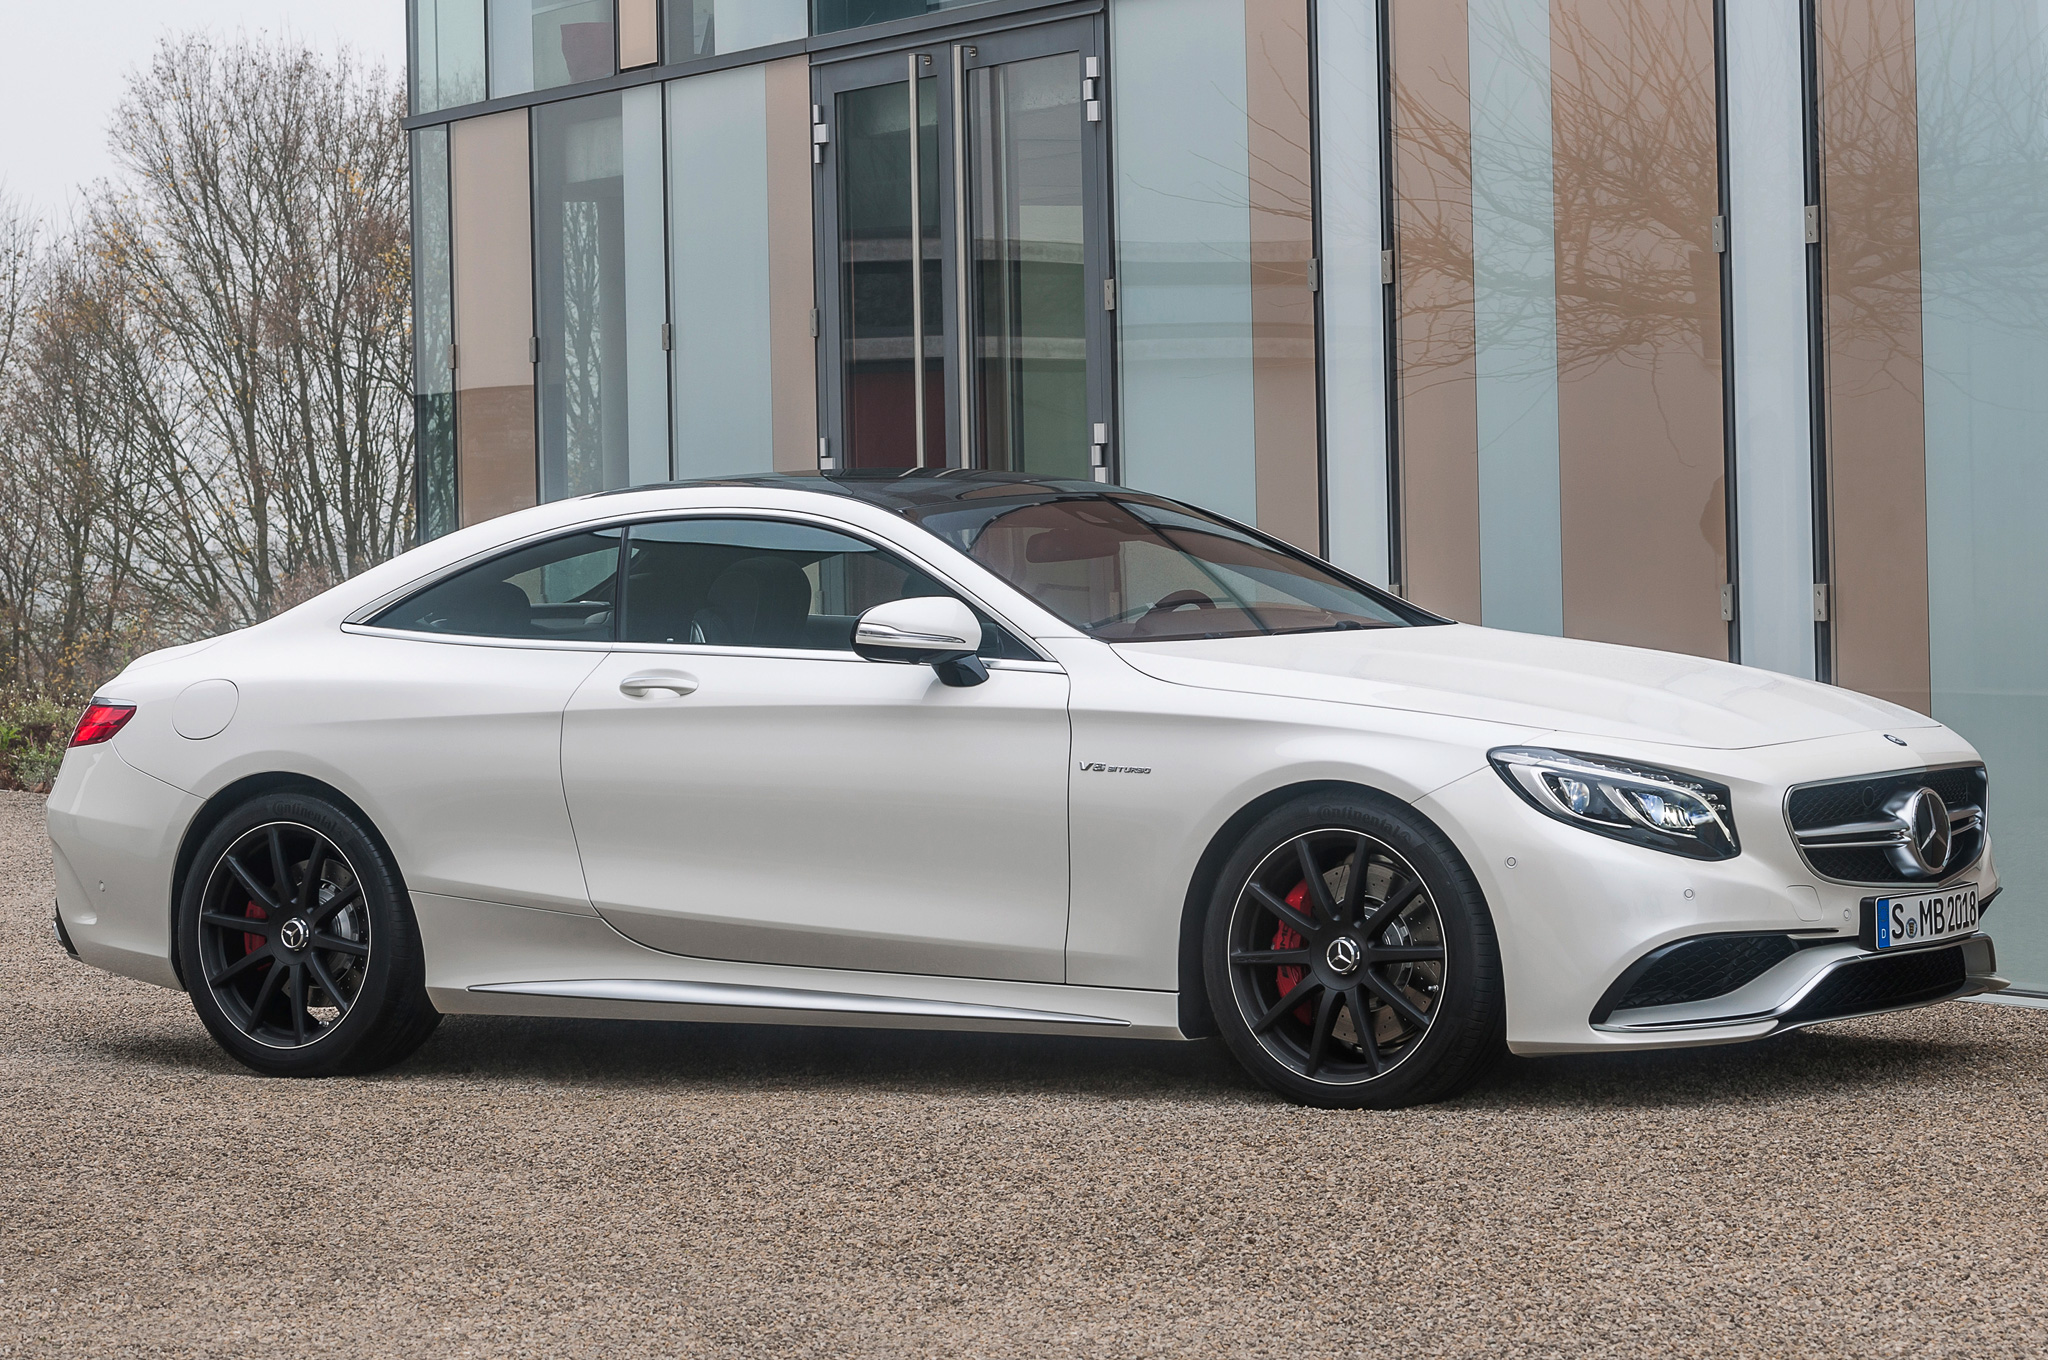 Mercedes Benz S63 AMG Coupe Photo: motortrend